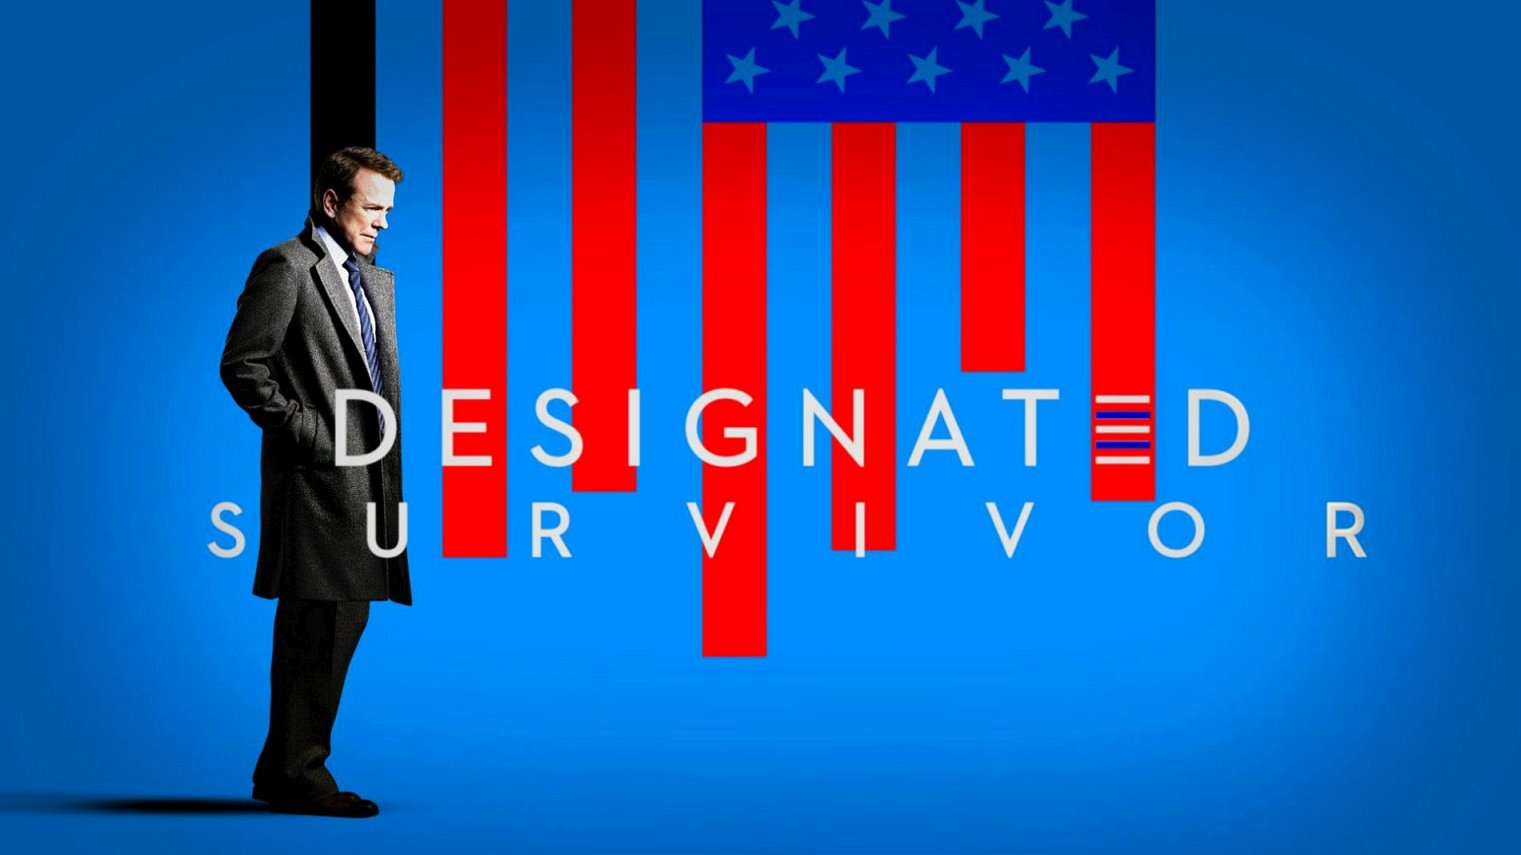 Designated Survivor season 2 episode 9 watch online